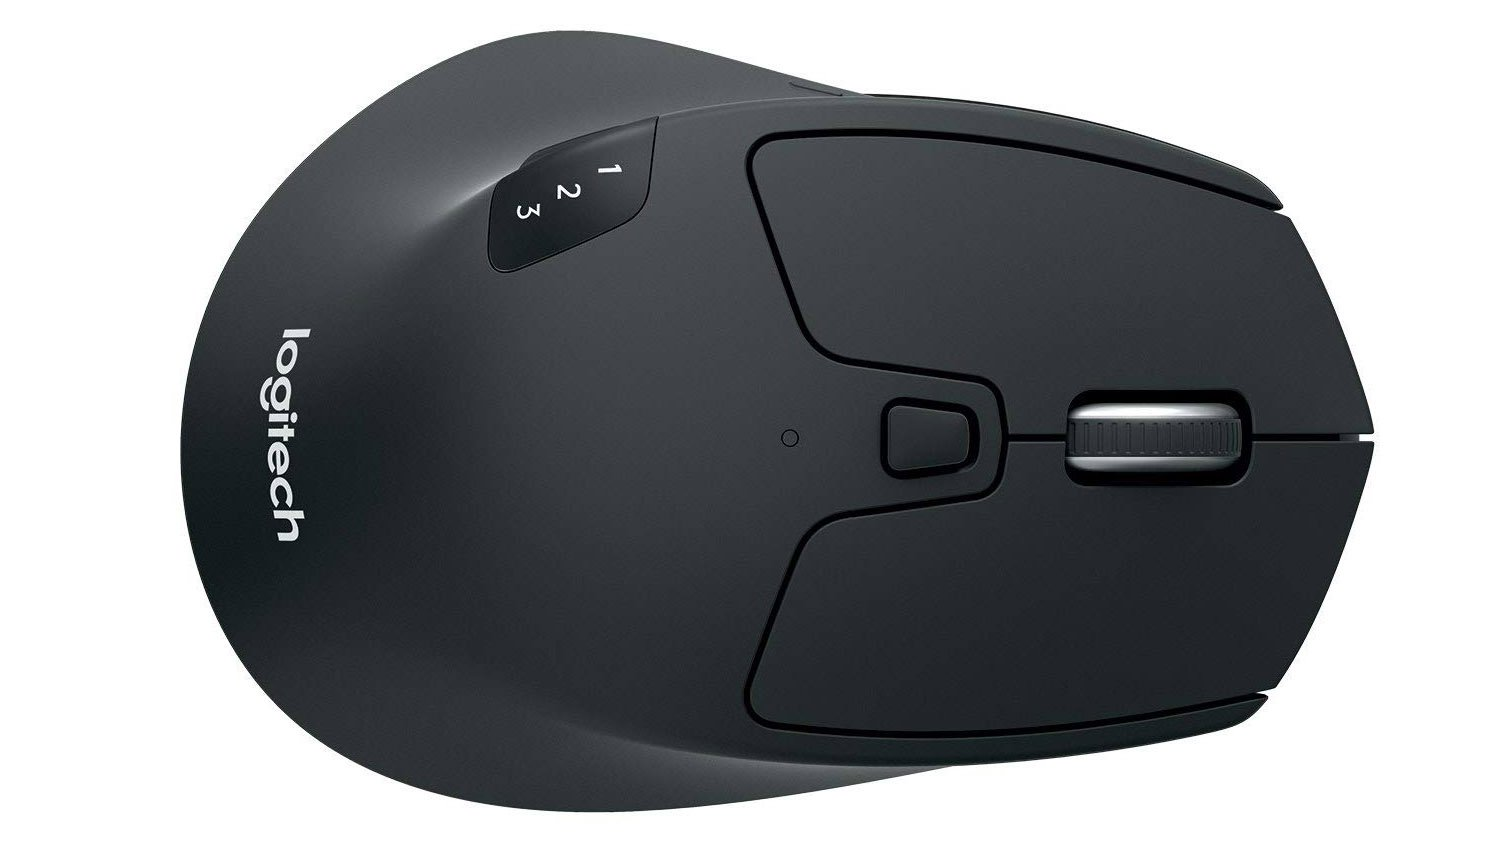 Best wireless mouse 2019: More comfort and control for your laptop